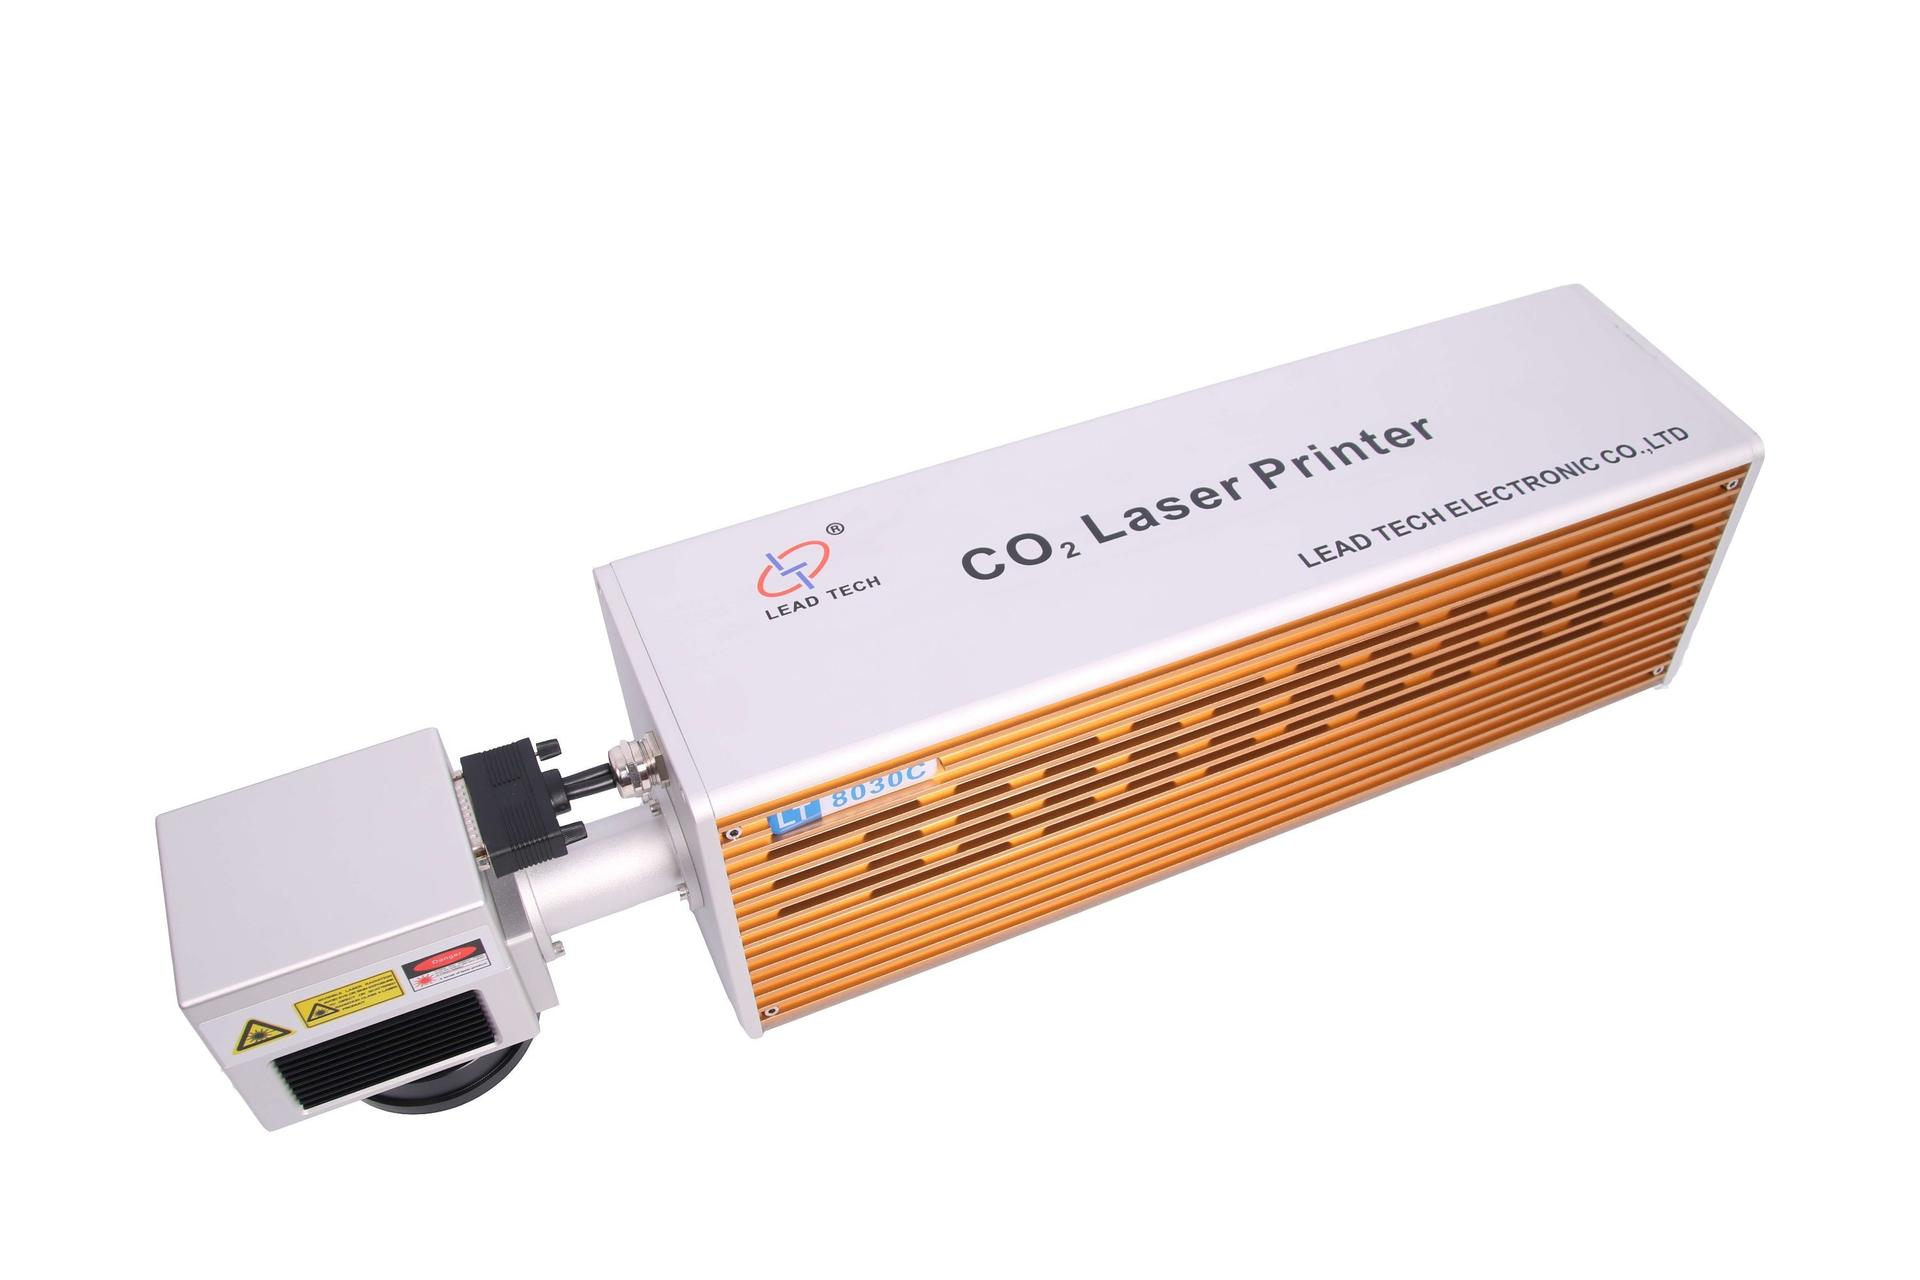 Lead Tech High Speed Laser Printers for Bottles, Cables